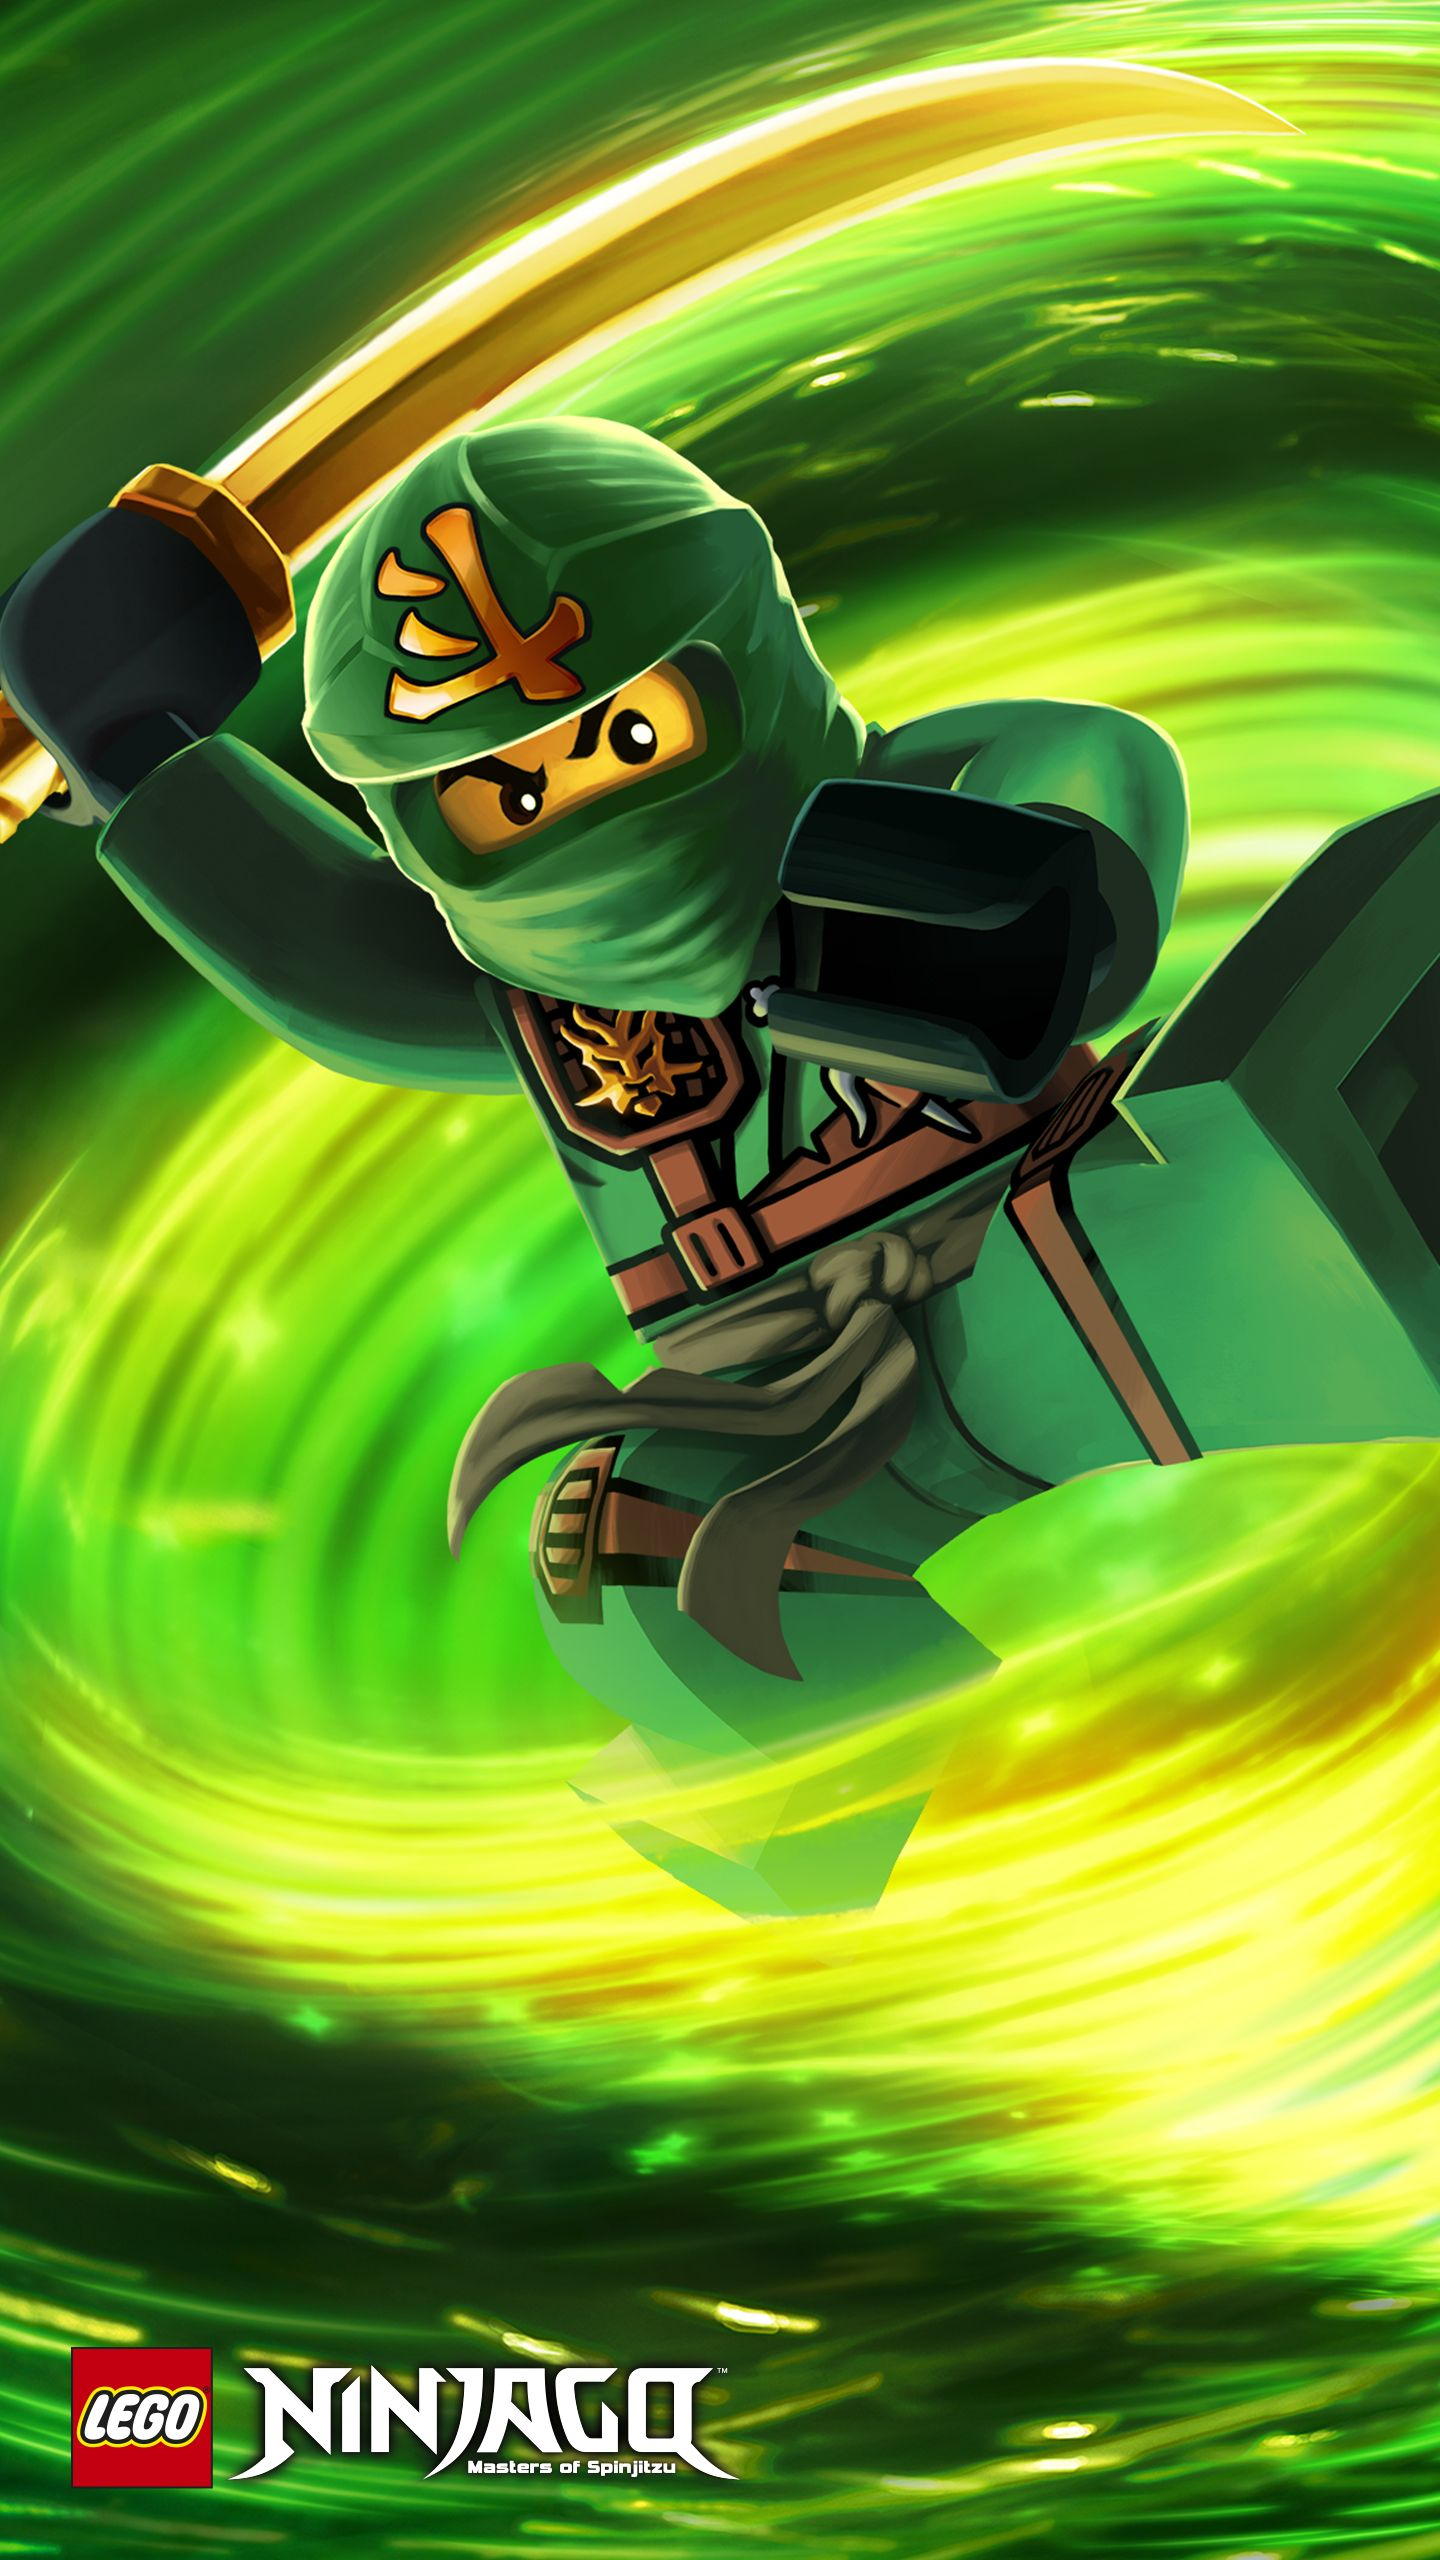 Lego ninjago kai wallpapers top free lego ninjago kai backgrounds wallpaperaccess - Ninja ninjago ...